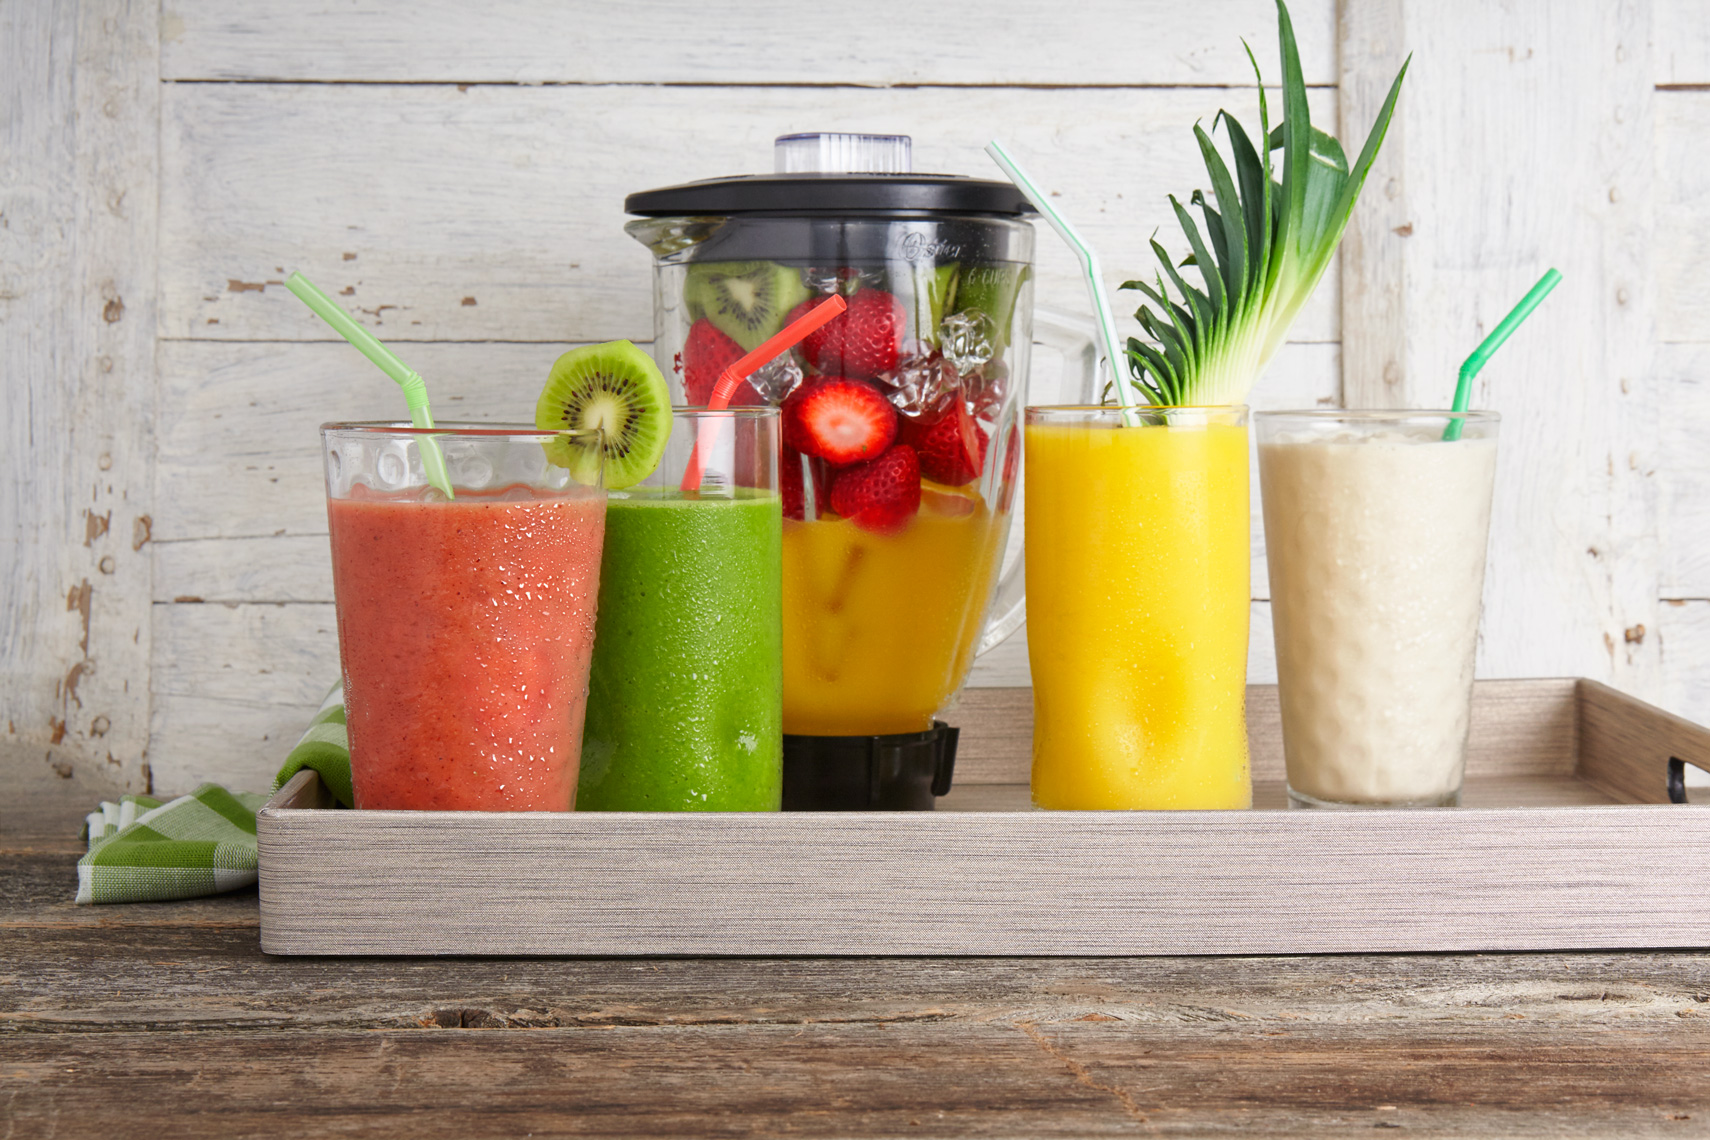 4-Smoothies-Blender